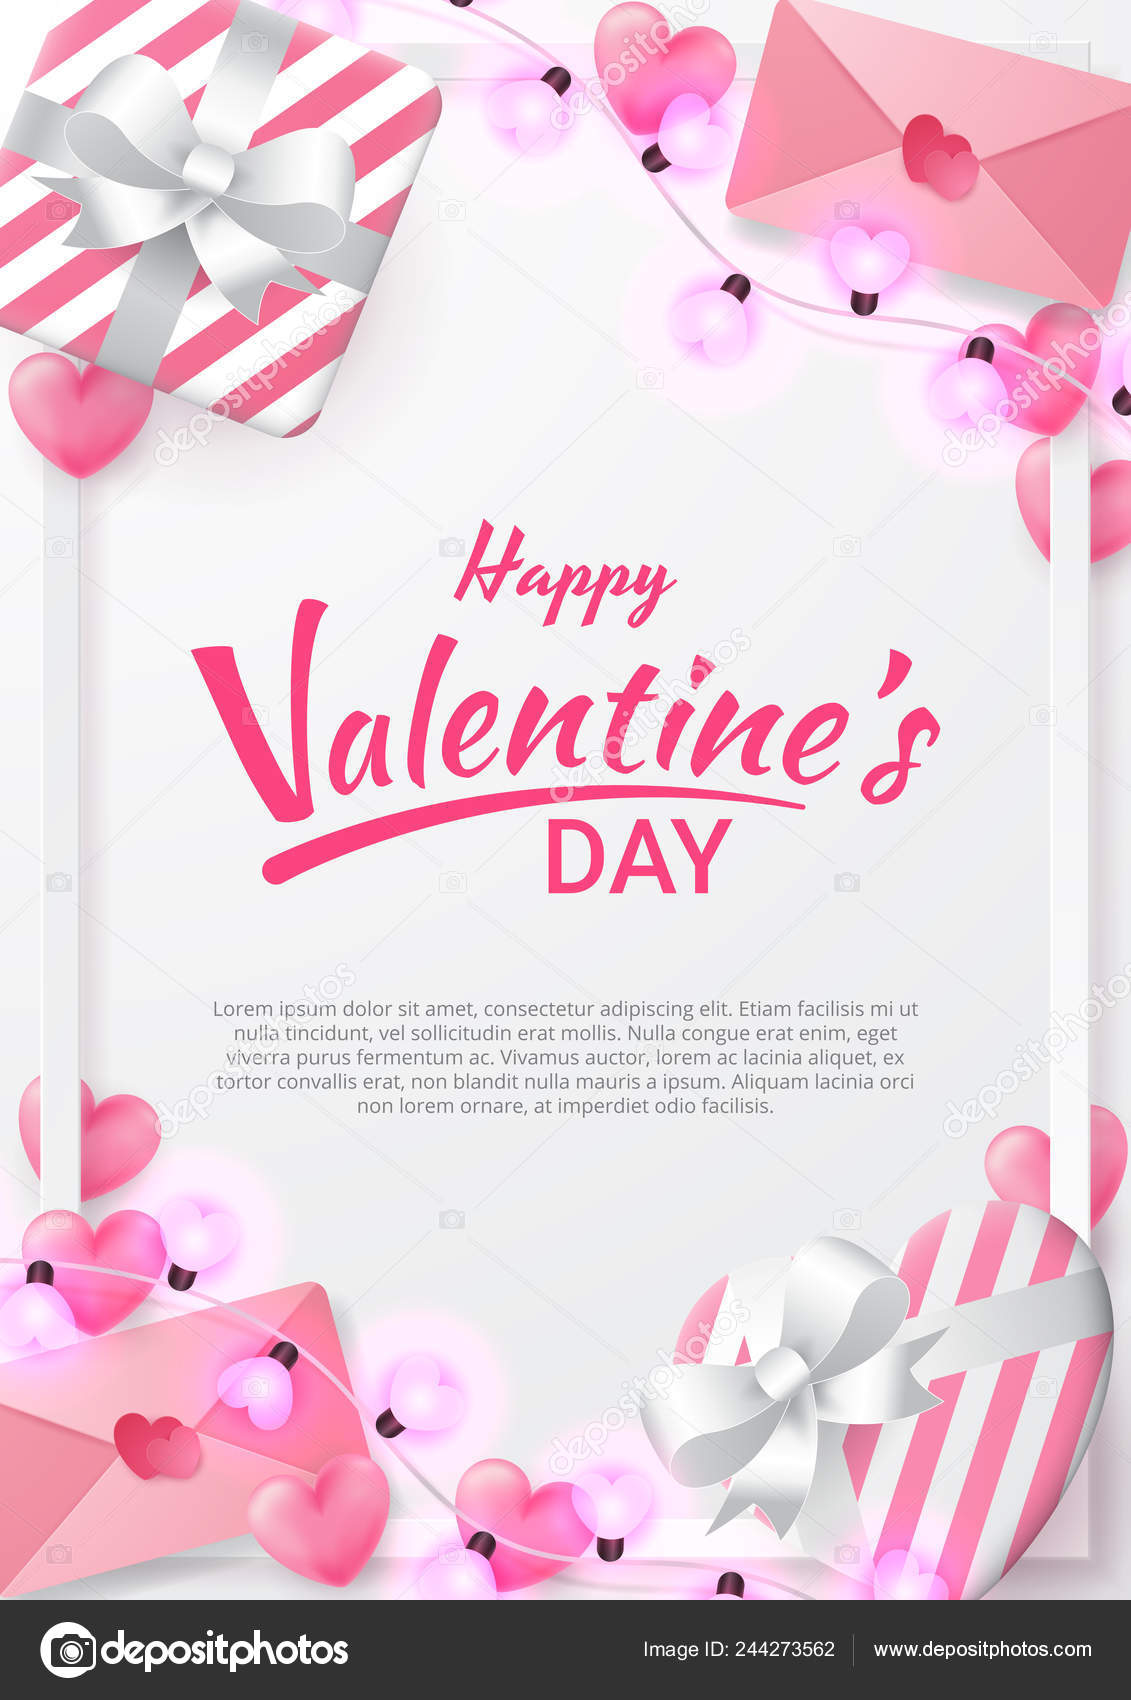 Valentines Day Background With Heart Shaped Love Letter - HD Wallpaper